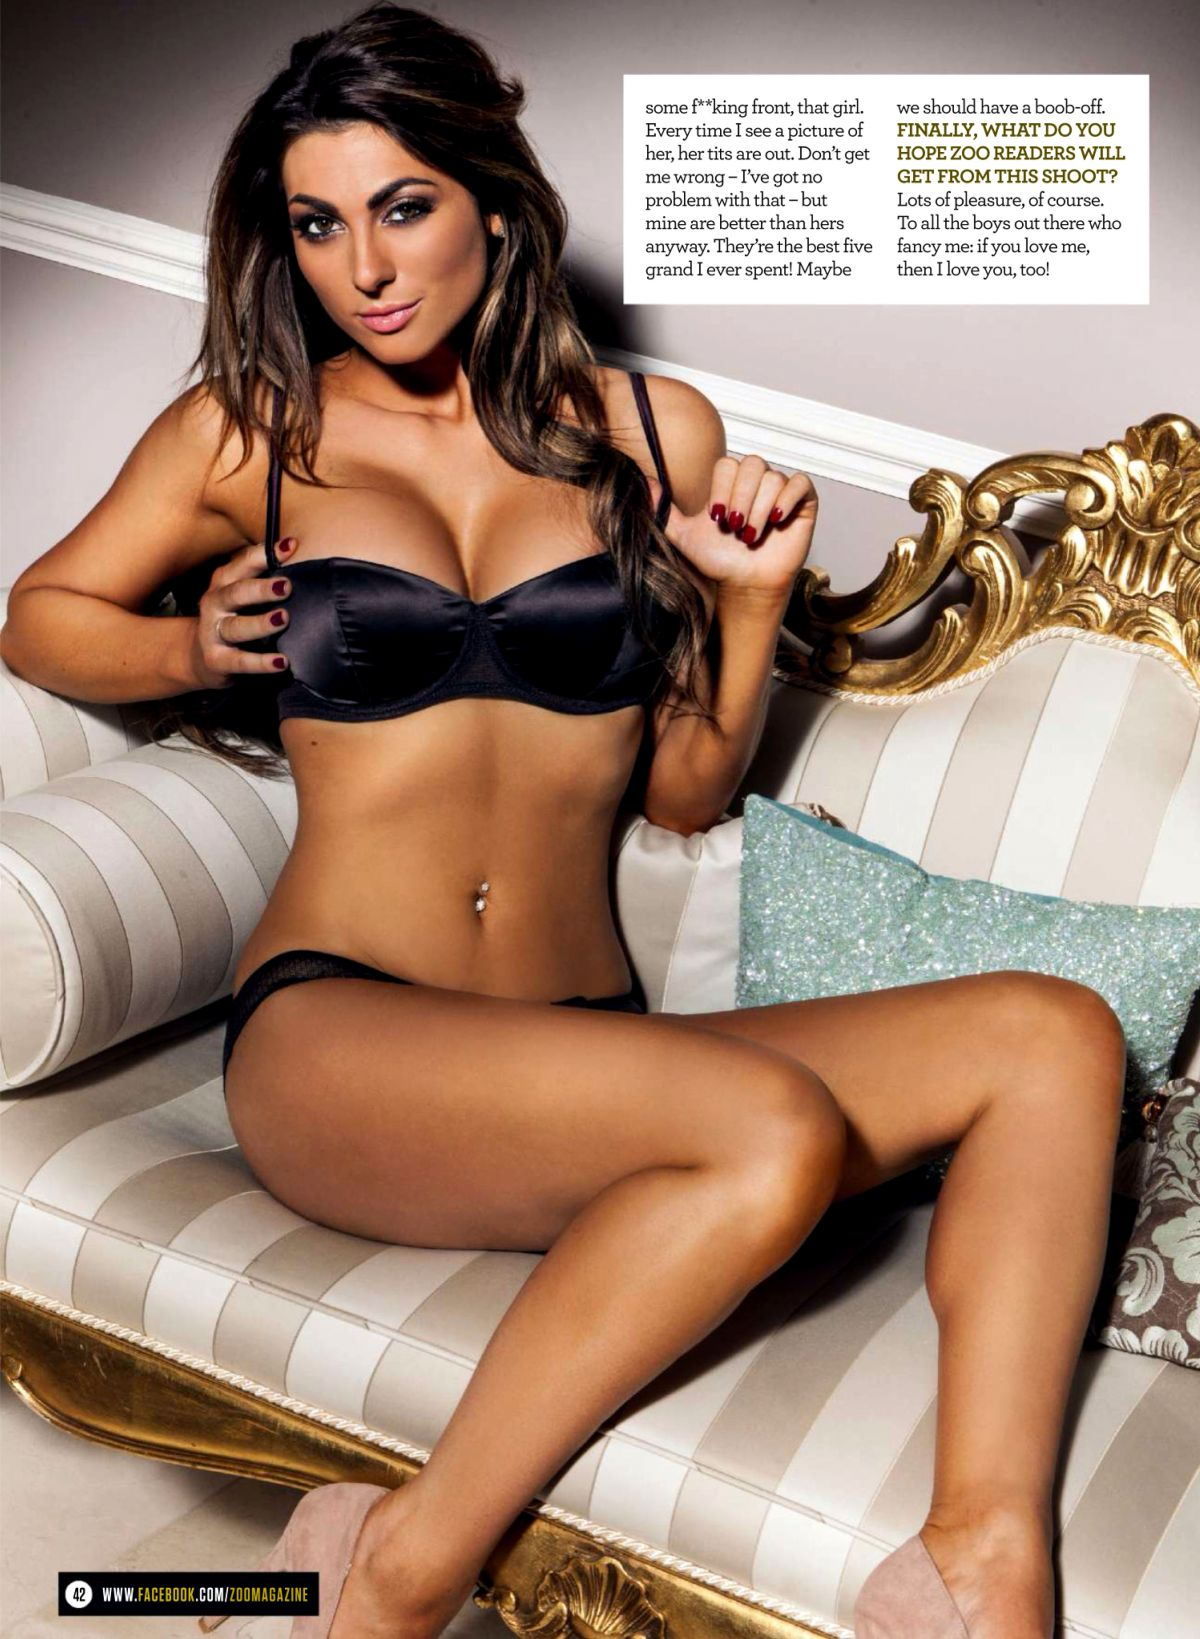 luisa-zissman-in-zoo-magazine-20th-february-2014-issue_11.jpg - 254.71 KB